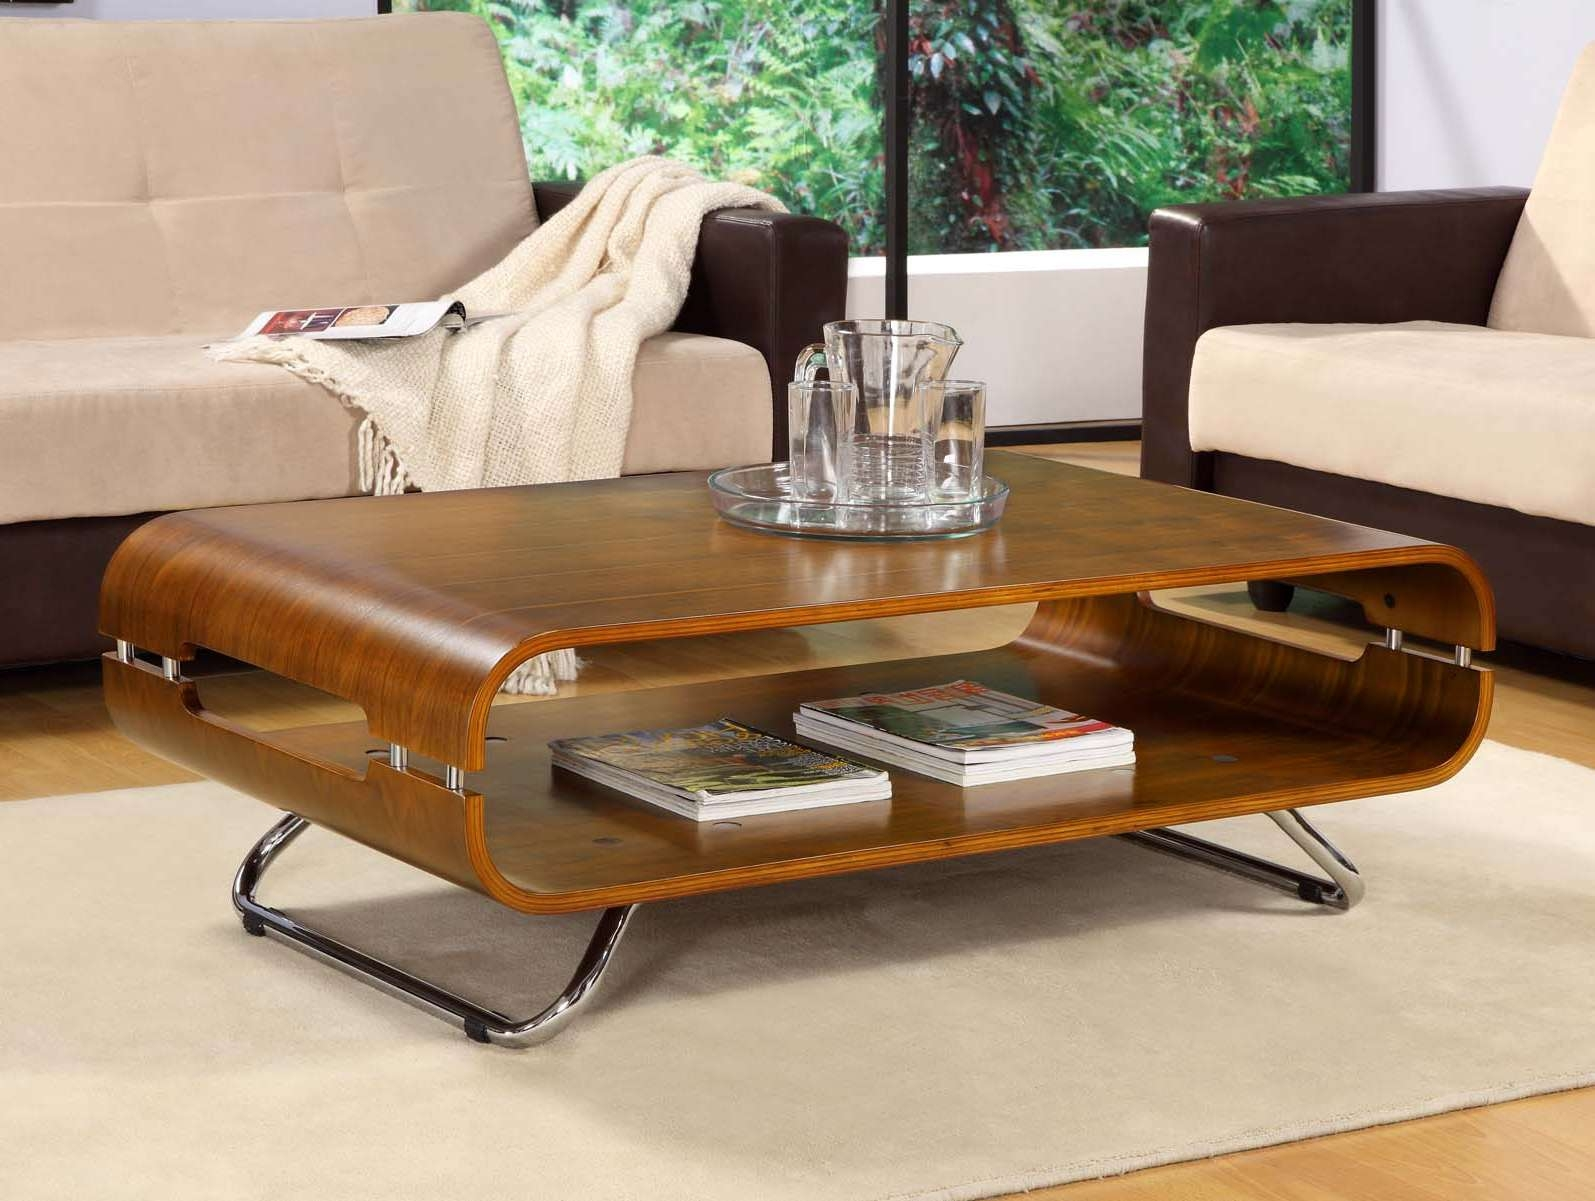 Newest Curve Coffee Tables With Jual Curve 2 Level Coffee Table – Home & Office Desks Uk & Ireland (Gallery 10 of 20)